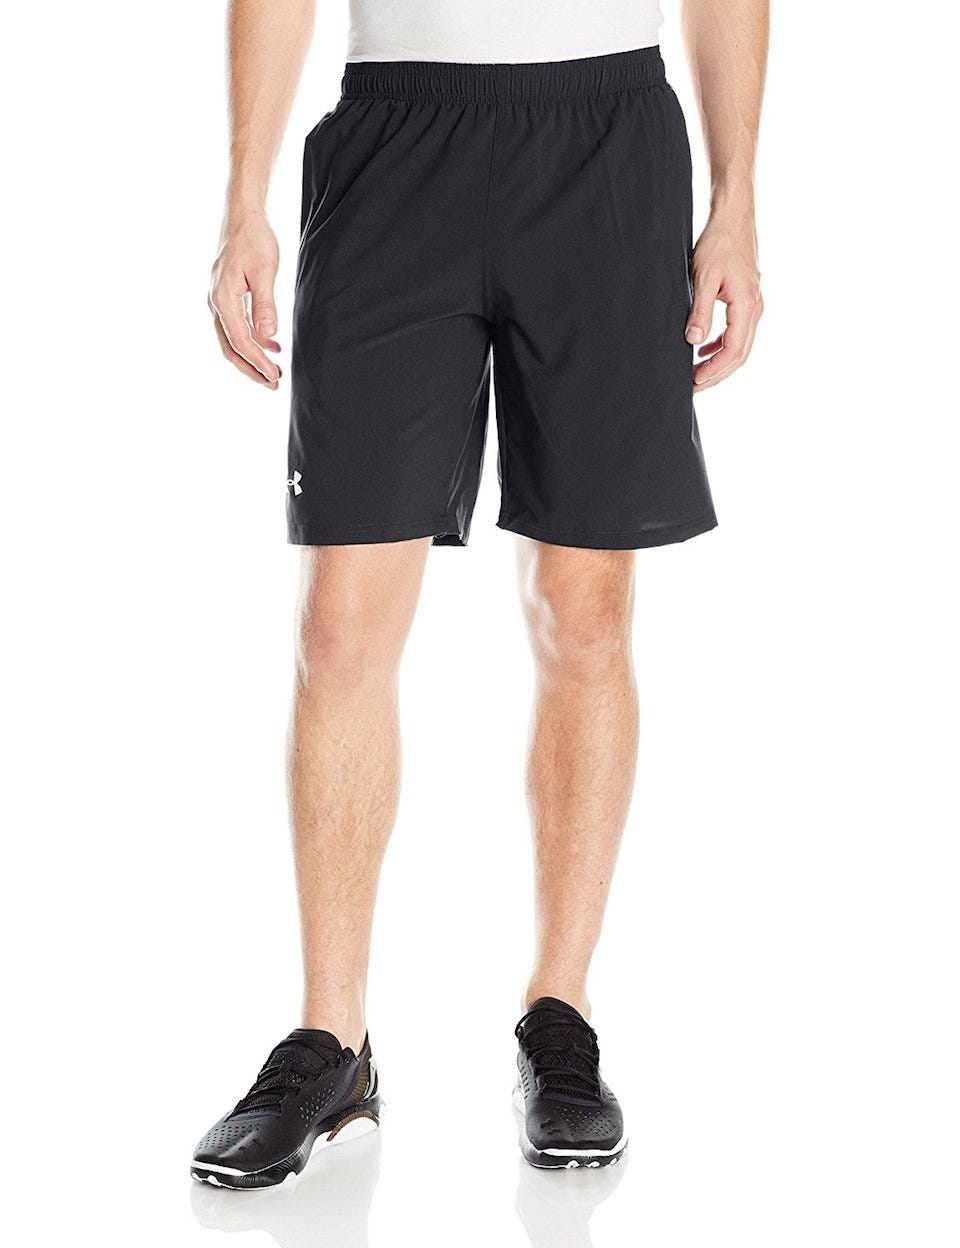 c2e6a1c5c0 Our final pick for best running pants isn't, well, pants at all. When it  comes to ultimate cooling you can't beat leaving your lower legs exposed so  shorts ...